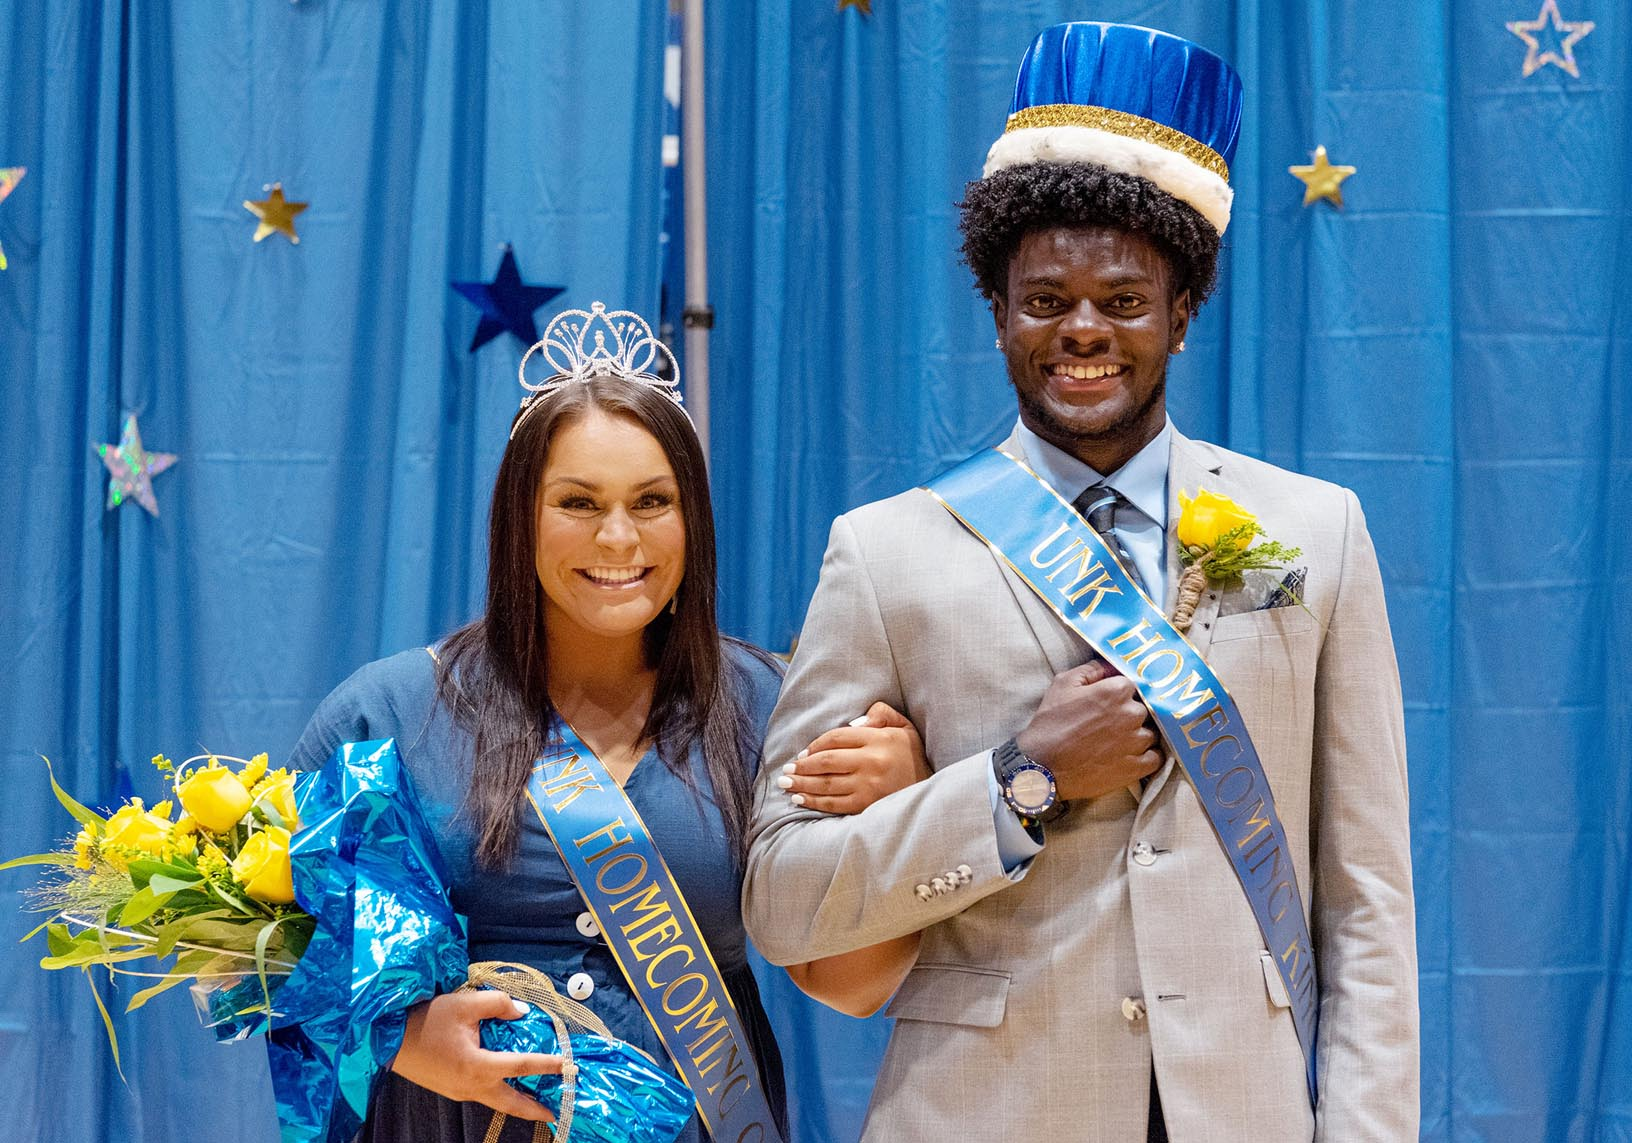 Fayth Jackson of Lincoln and Gabriel Amegatcher of Romeoville, Illinois, were crowned UNK homecoming queen and king during a ceremony Thursday evening.